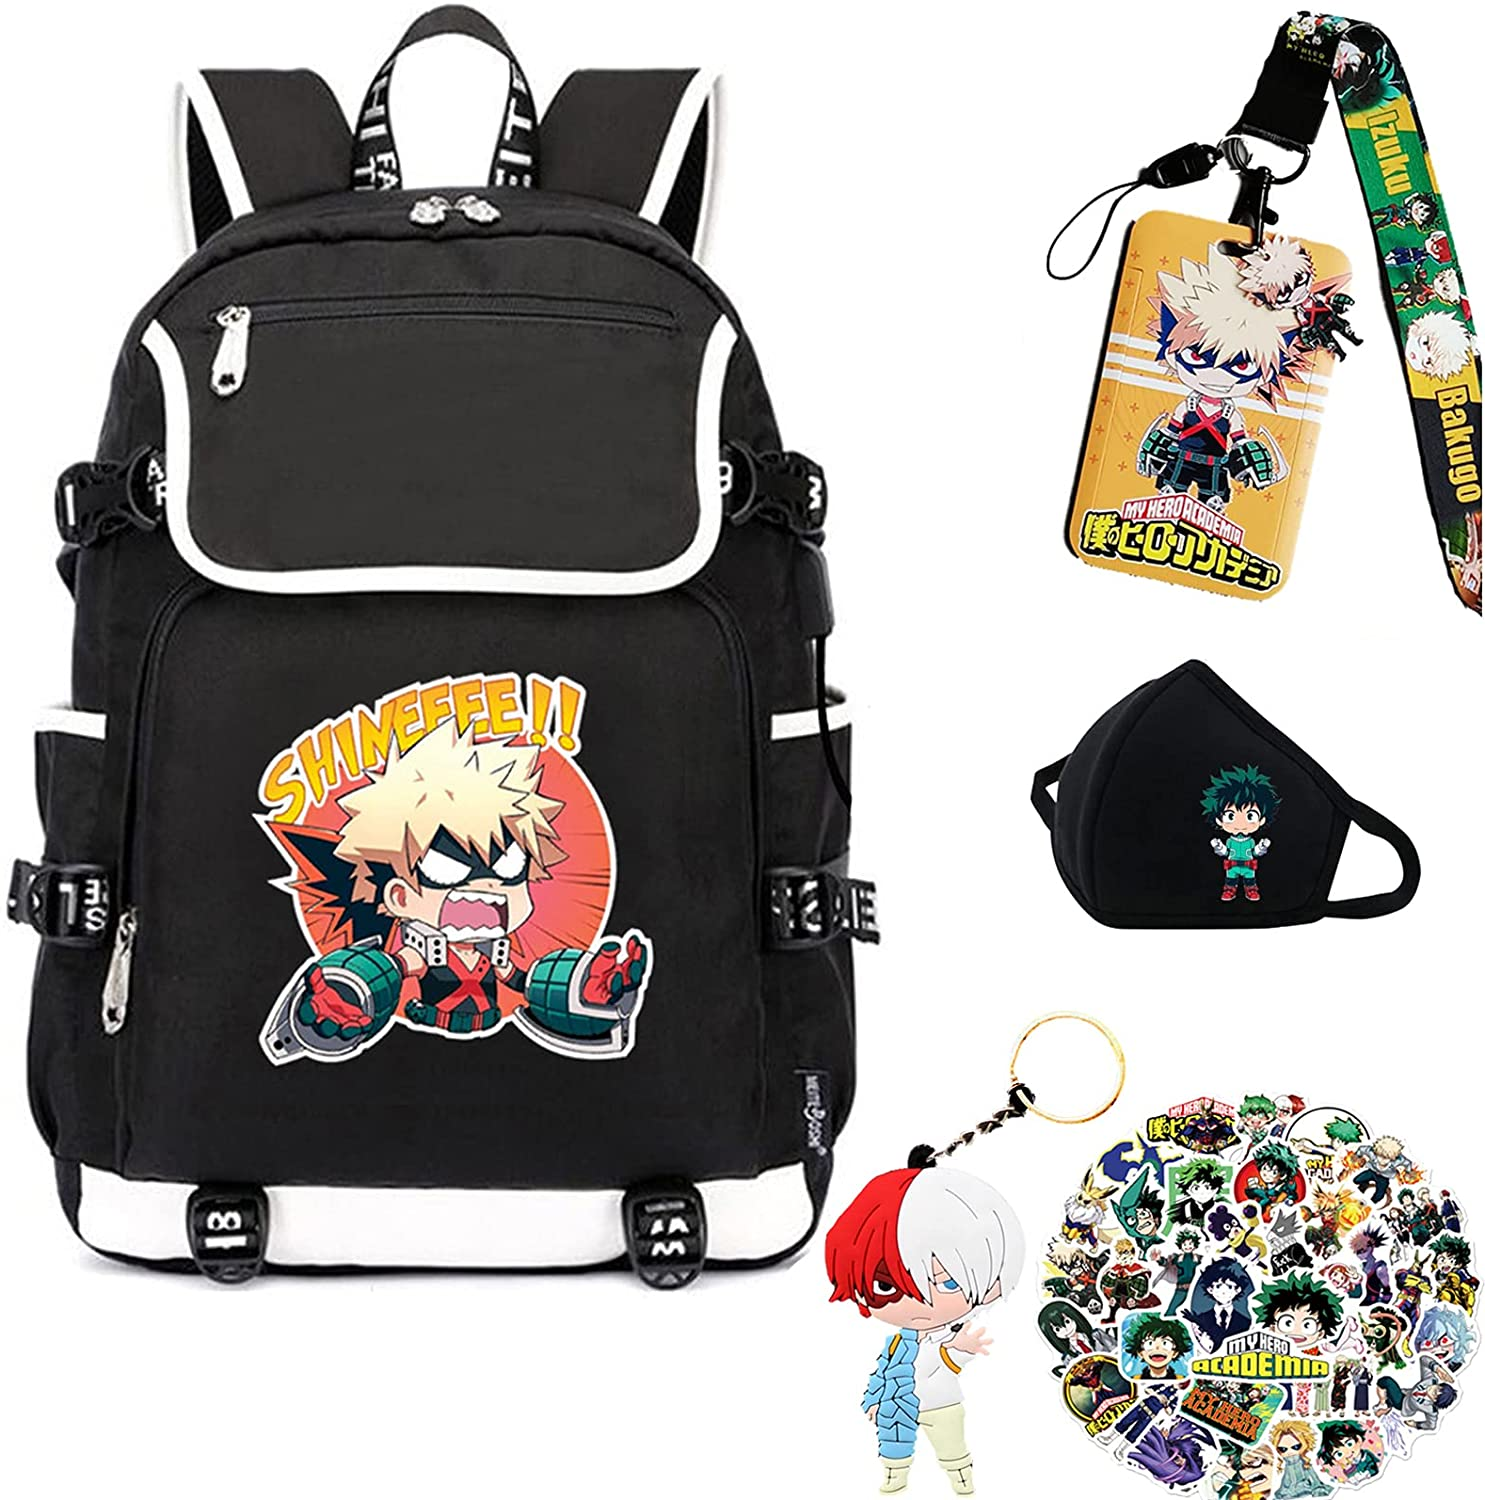 My Hero Academia Max 74% OFF Backpack with USB Charging wi Bookbag BNHA Port Miami Mall